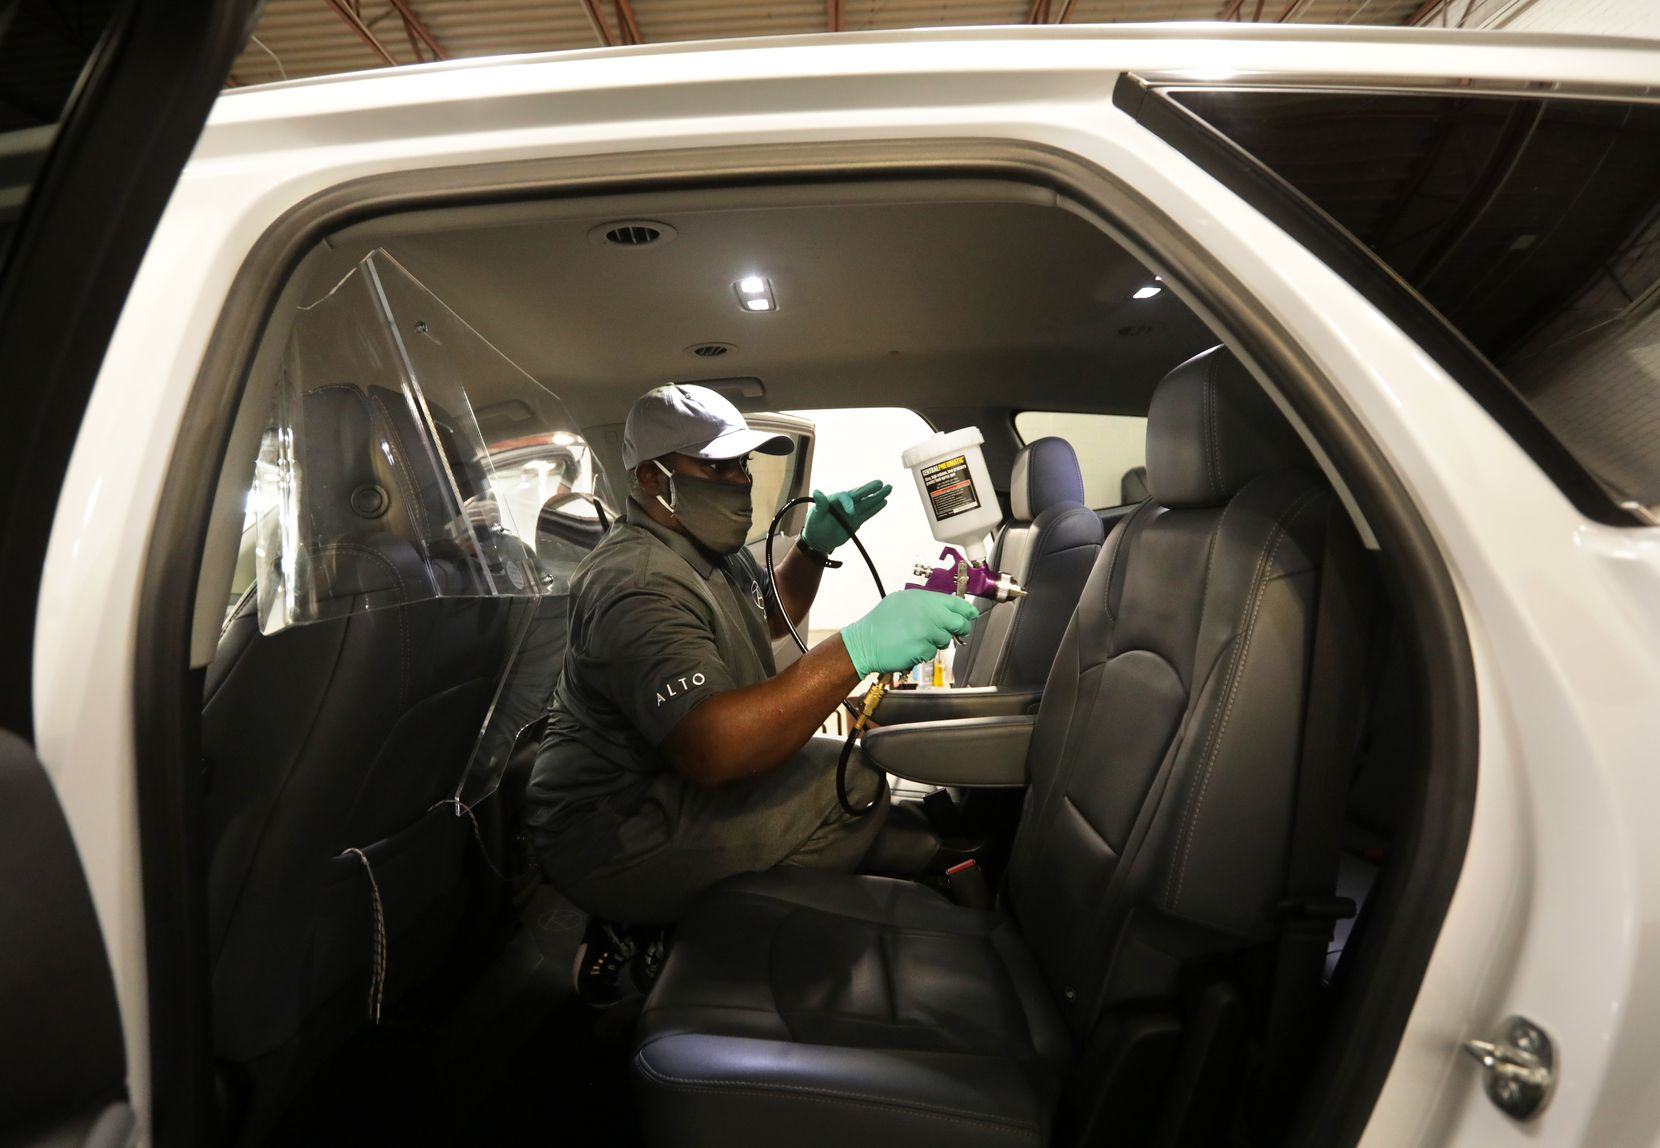 Gregory Brown sprays PermaSafe disinfectant in a vehicle at Alto headquarters in Dallas. PermaSafe is a hospital-grade sanitizing mist that kills 99.9% of bacteria and viruses, including emerging pathogens like COVID-19.